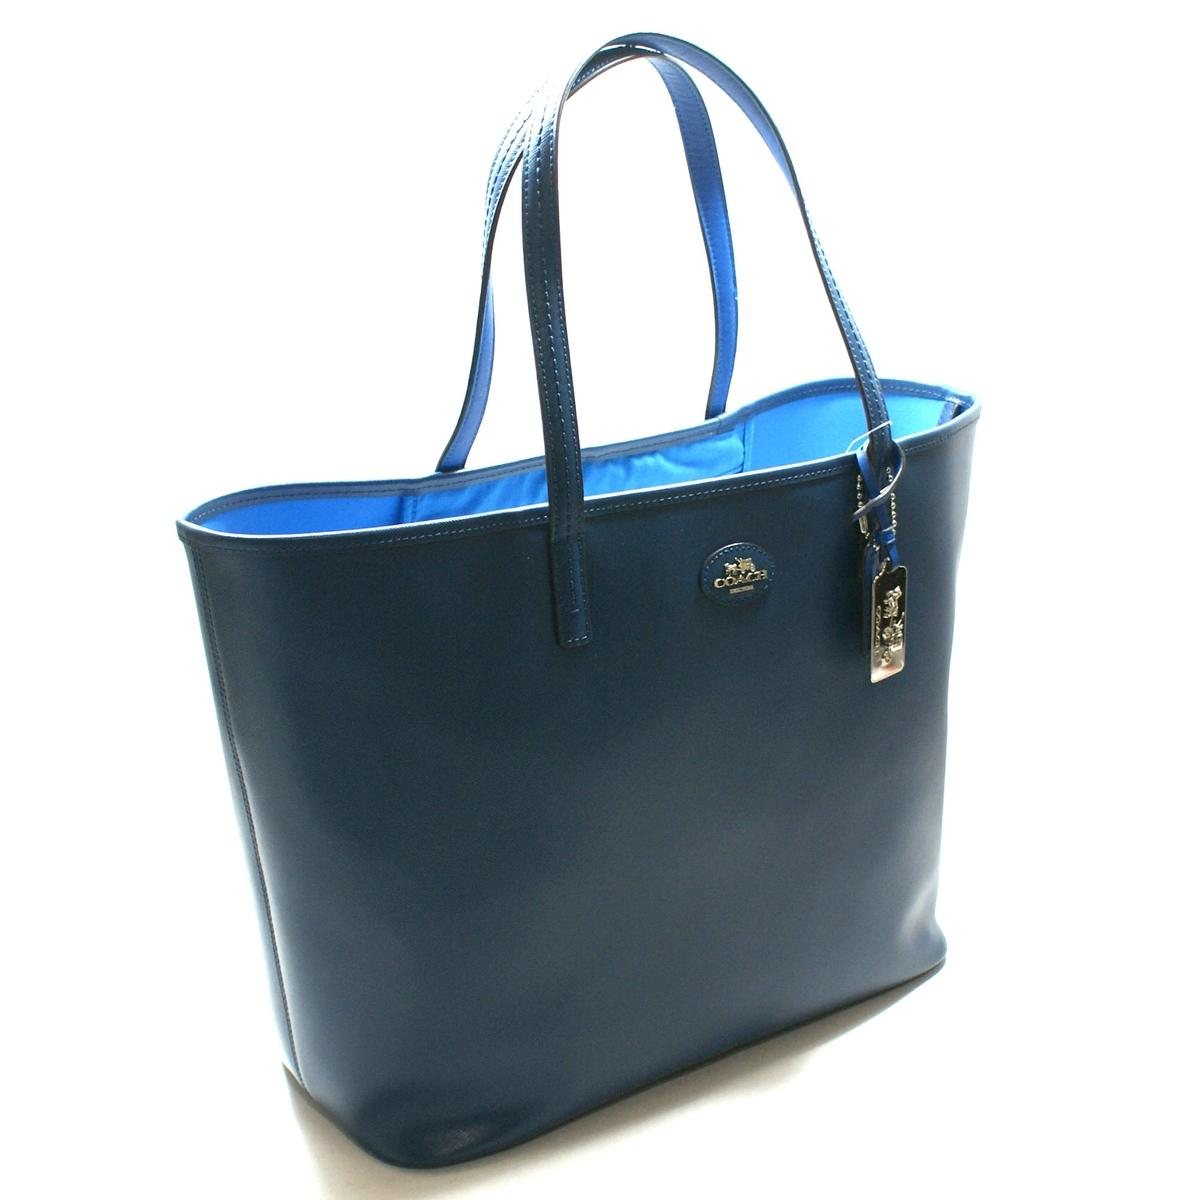 Home Coach Brilliant Blue Leather Large Tote Bag